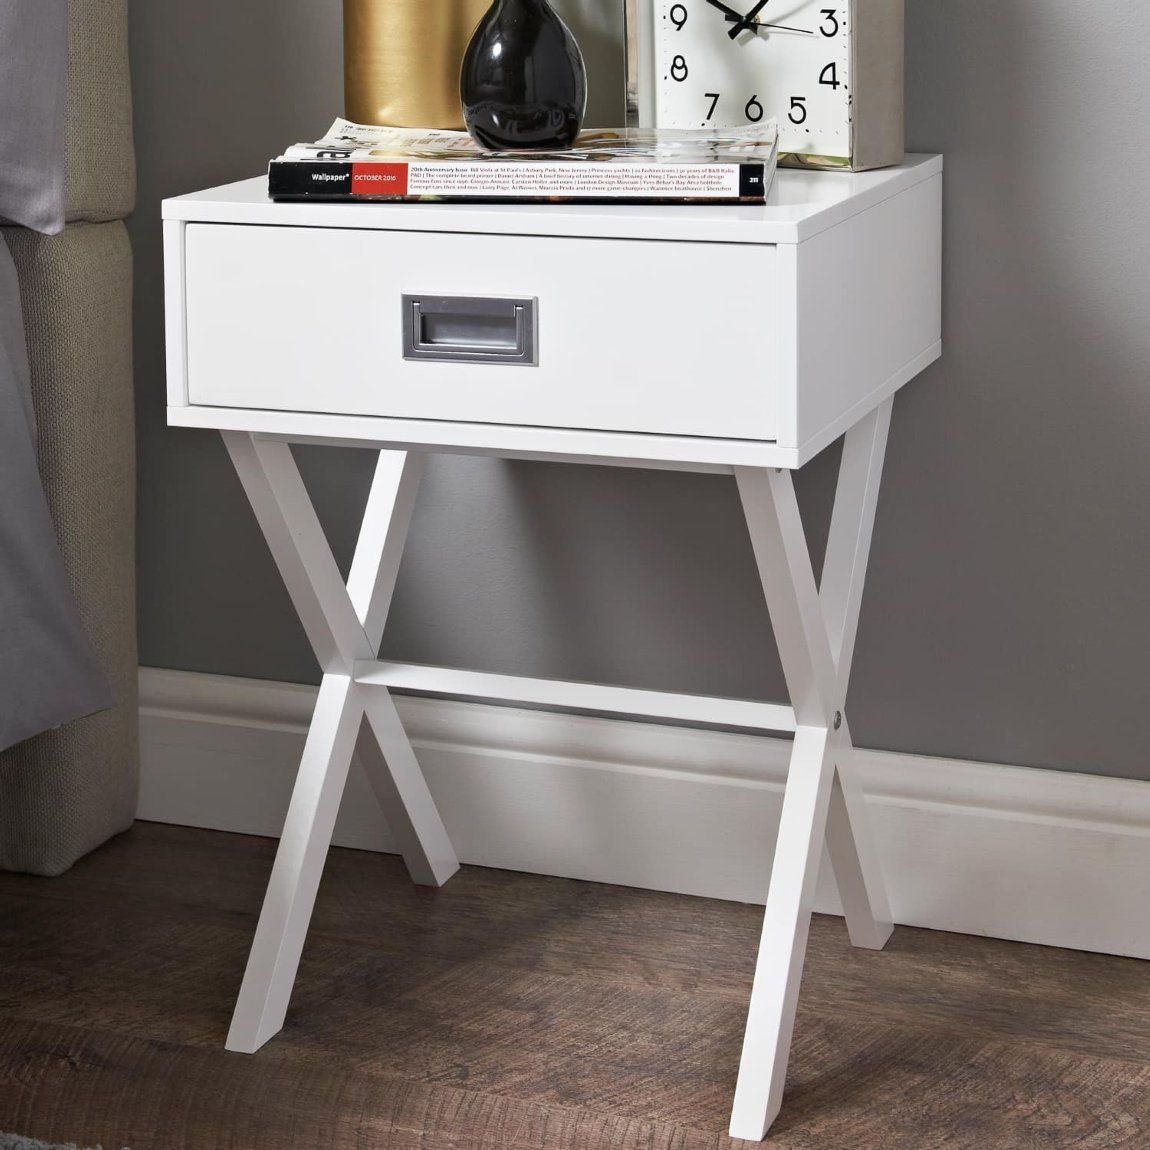 Hilton 1 Drawer Bedside Table White In 2020 Bedside Table Drawers